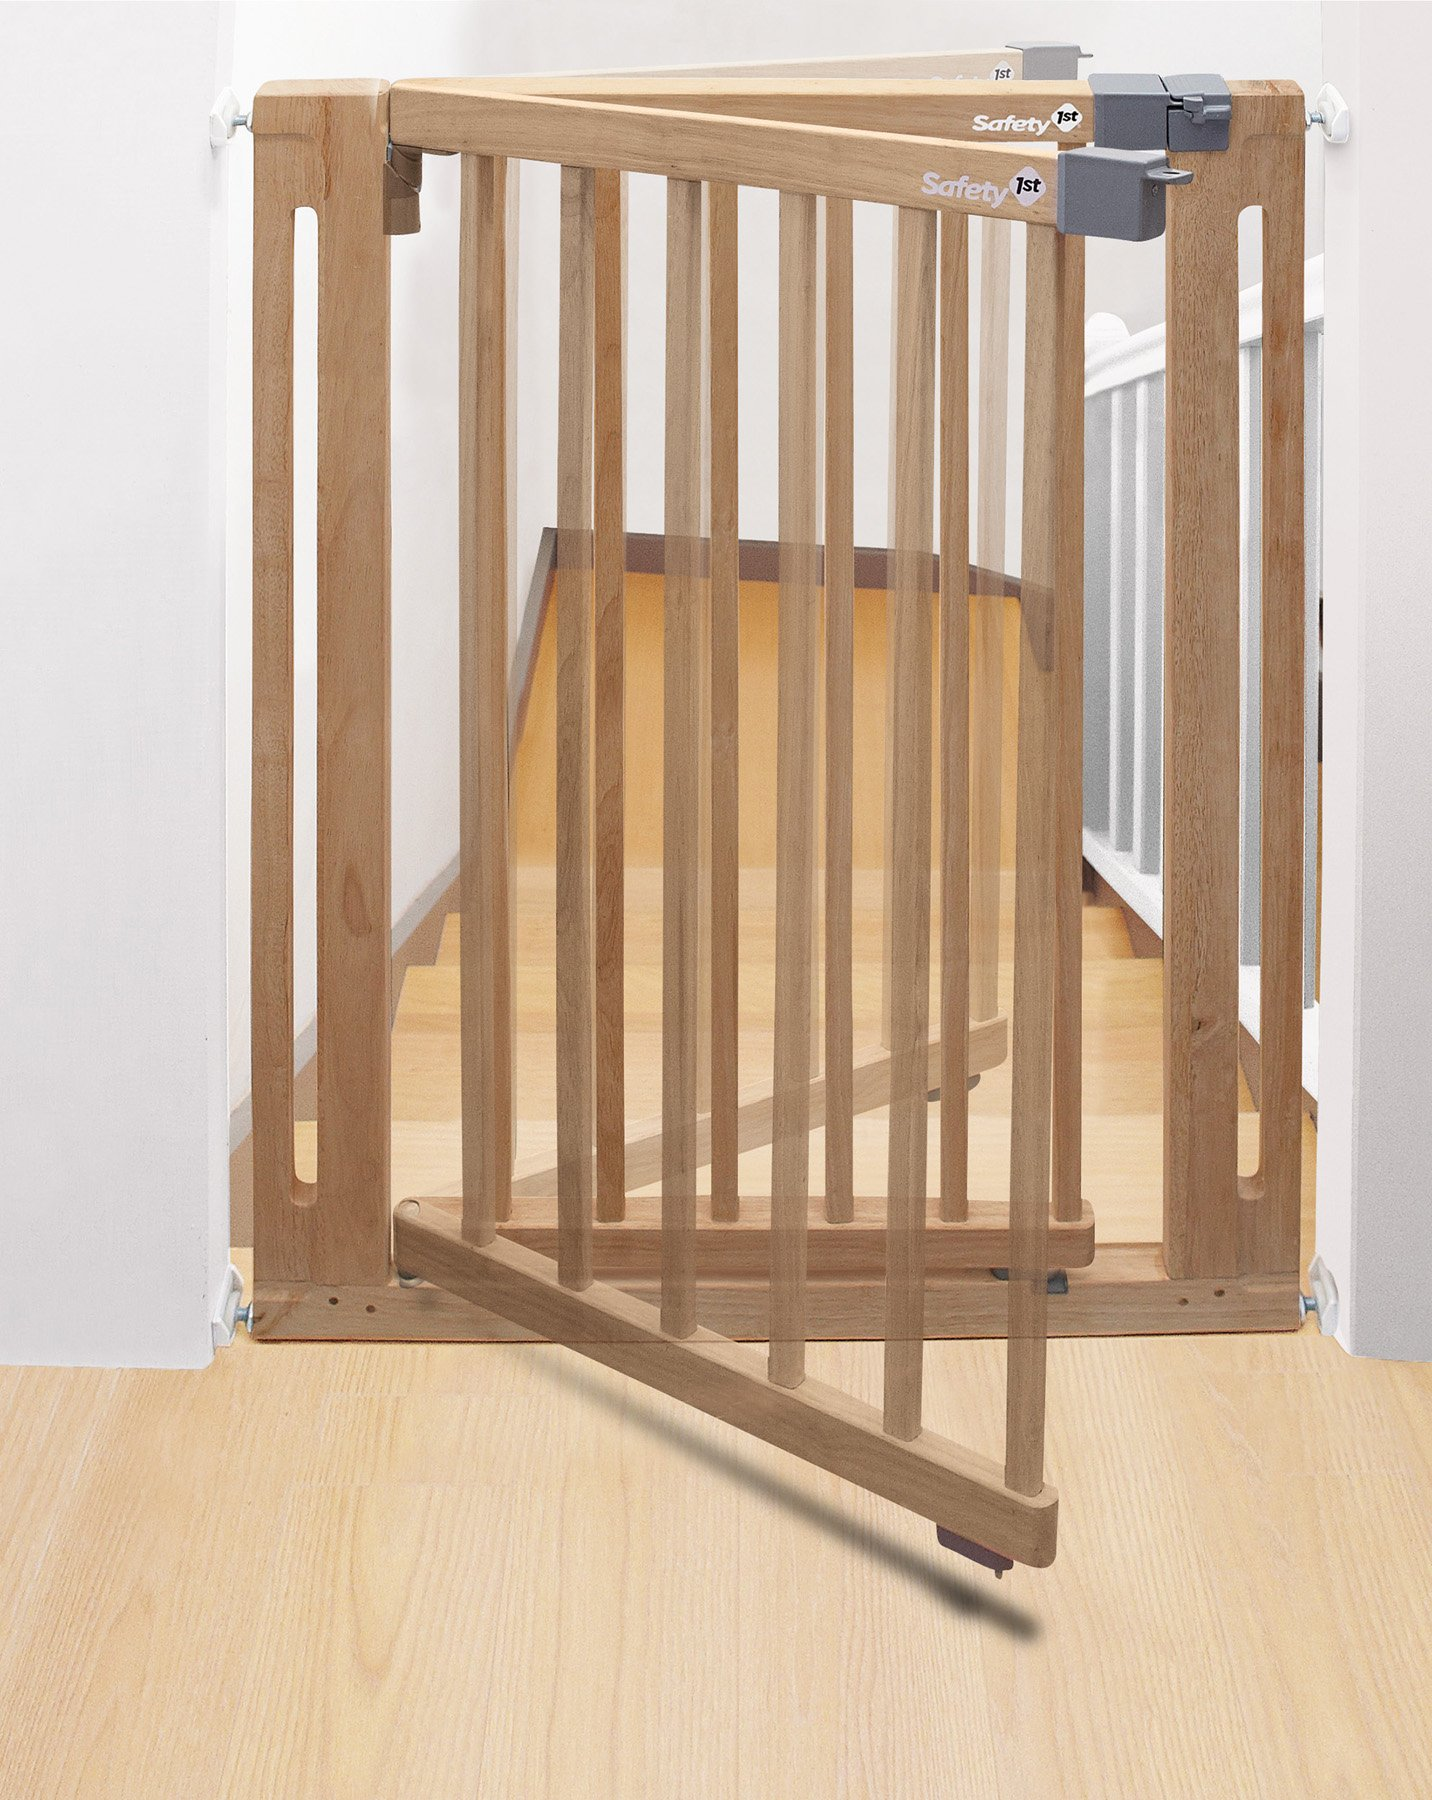 Safety 1st Easy Close Safety Gate Made from Wood / Pressure Fit / Natural  Stable door safety gate made of gum tree wood Easy to install due to 4-point clamping function Adjustable from 73 to 80.5 cm 3